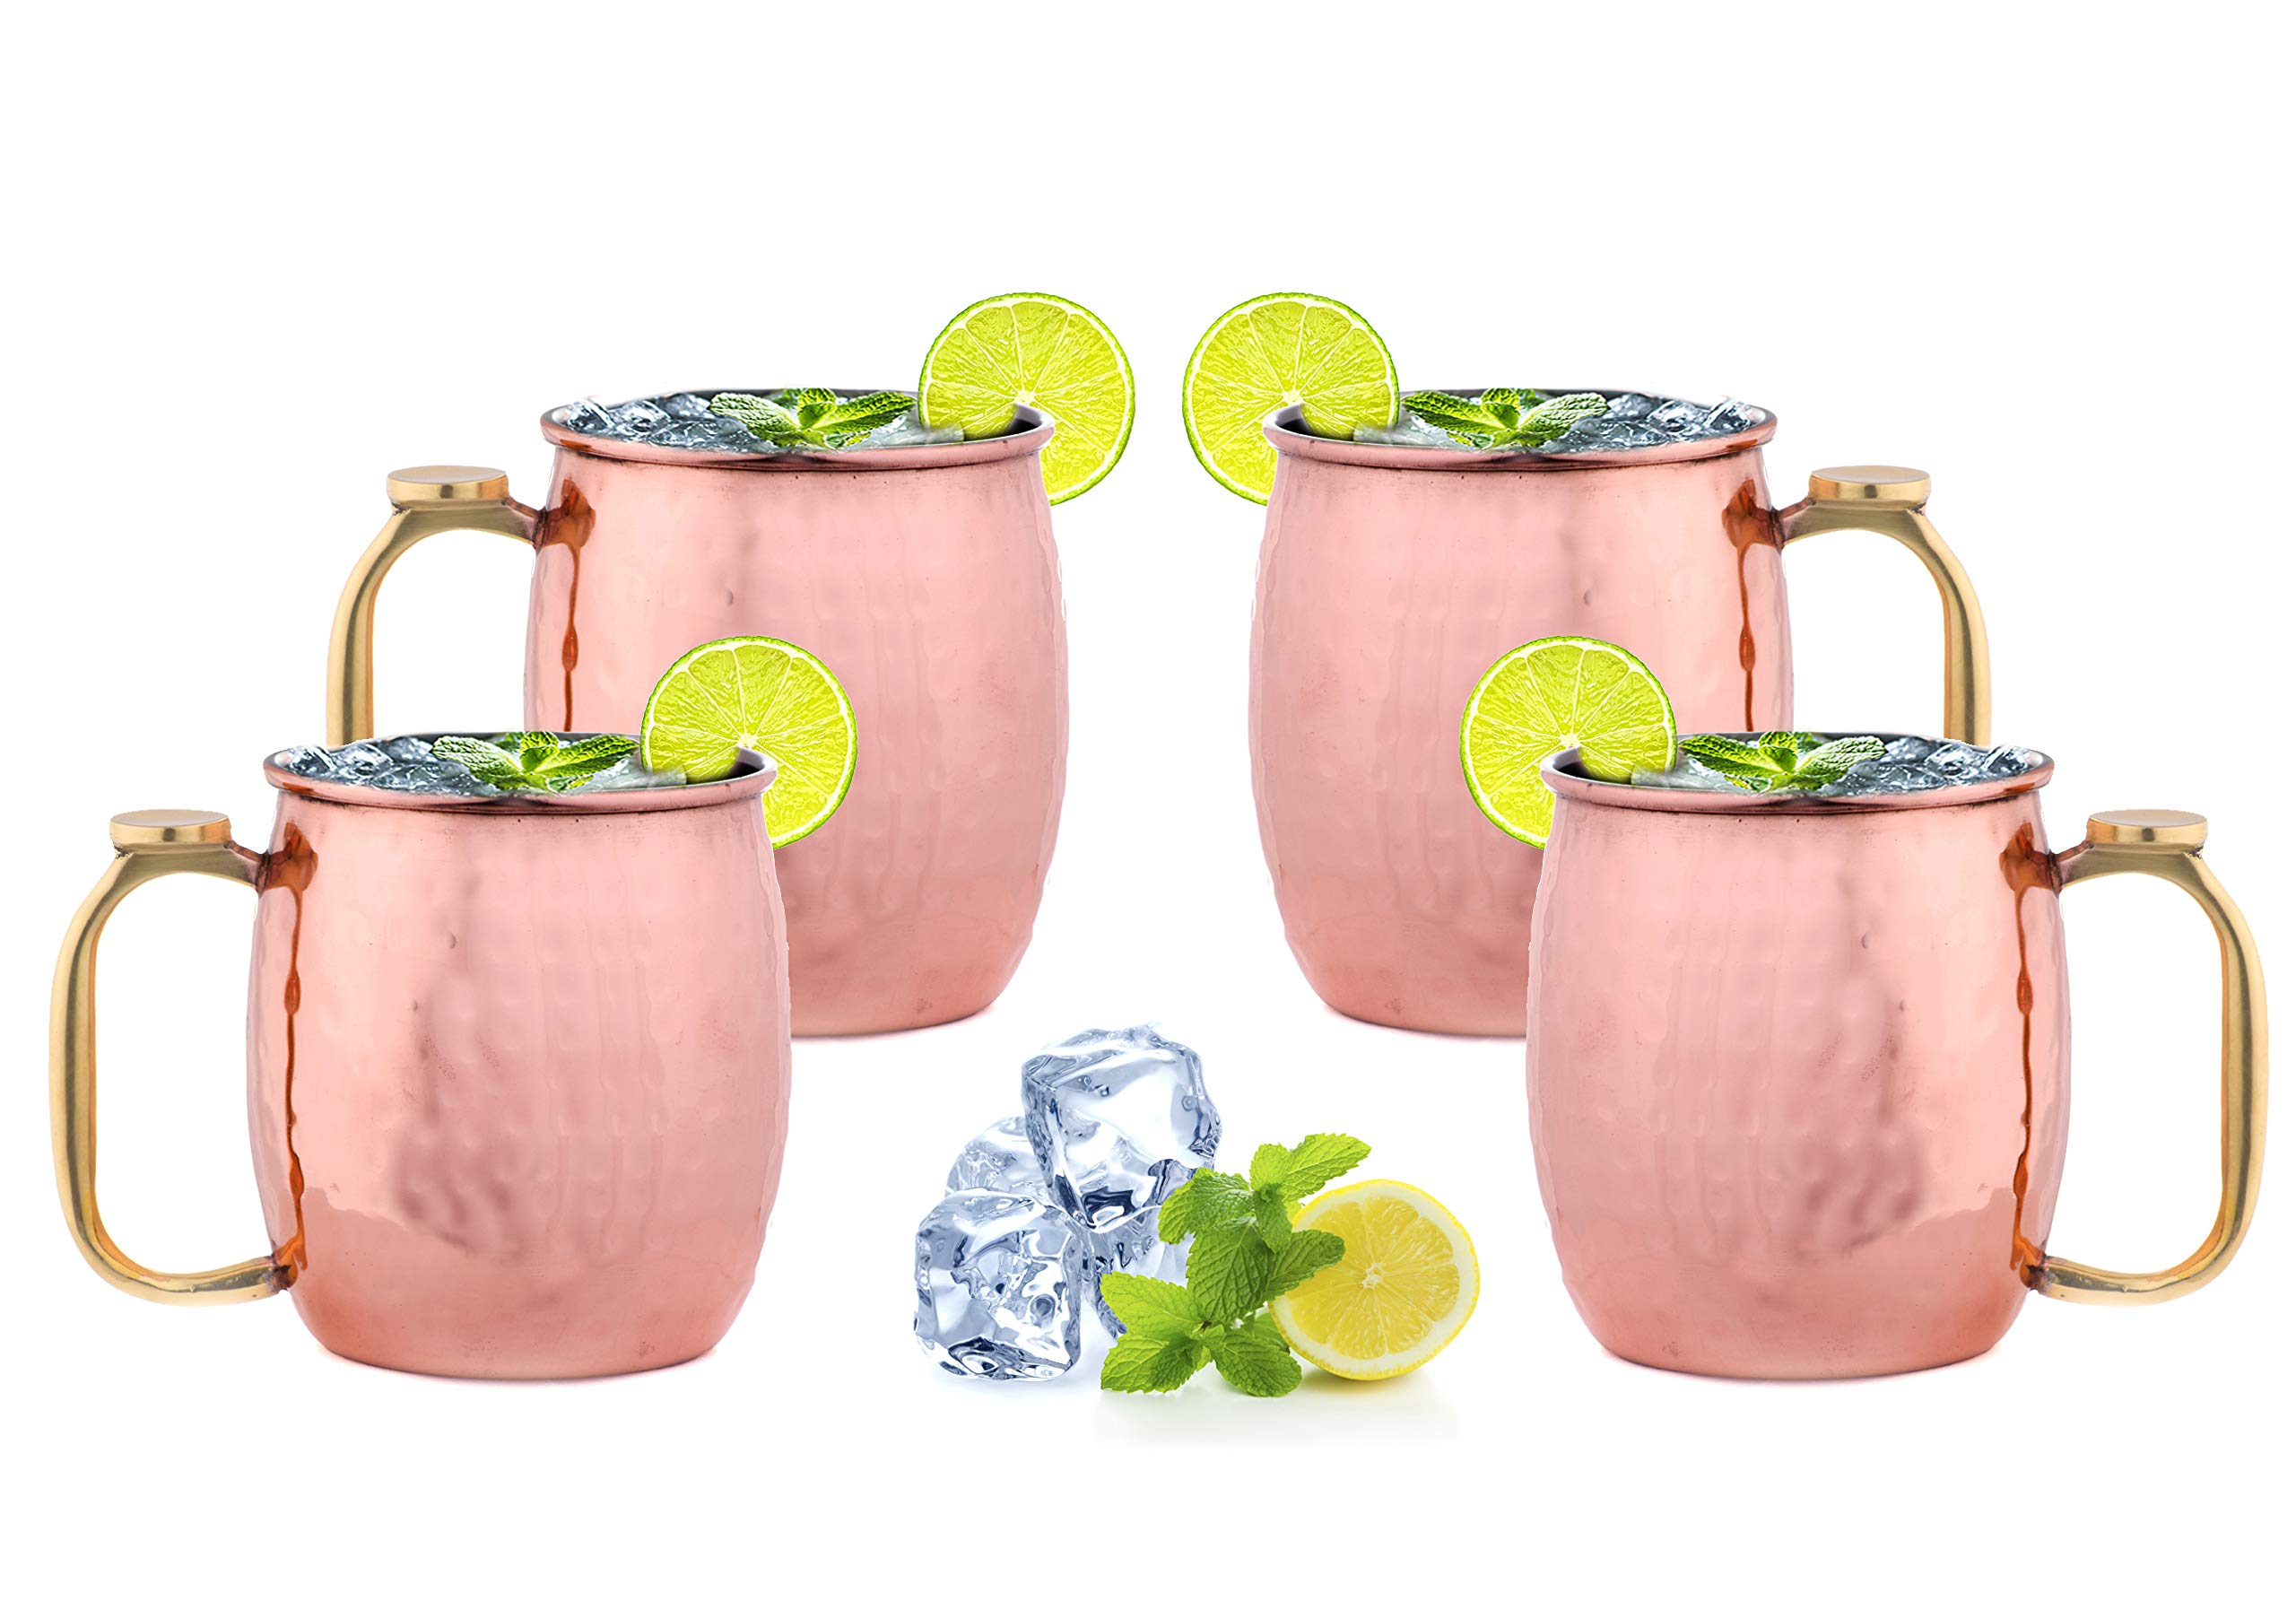 ARTISANS VILLAGE Moscow Mule Thumb Support Copper Mugs, 100% HANDCRAFTED, Food-safe Copper Mugs with Brass Handle and Stainless-Steel Lining, Highest Quality Cocktail 20 Oz (Set of 4, Hammered Thumb)